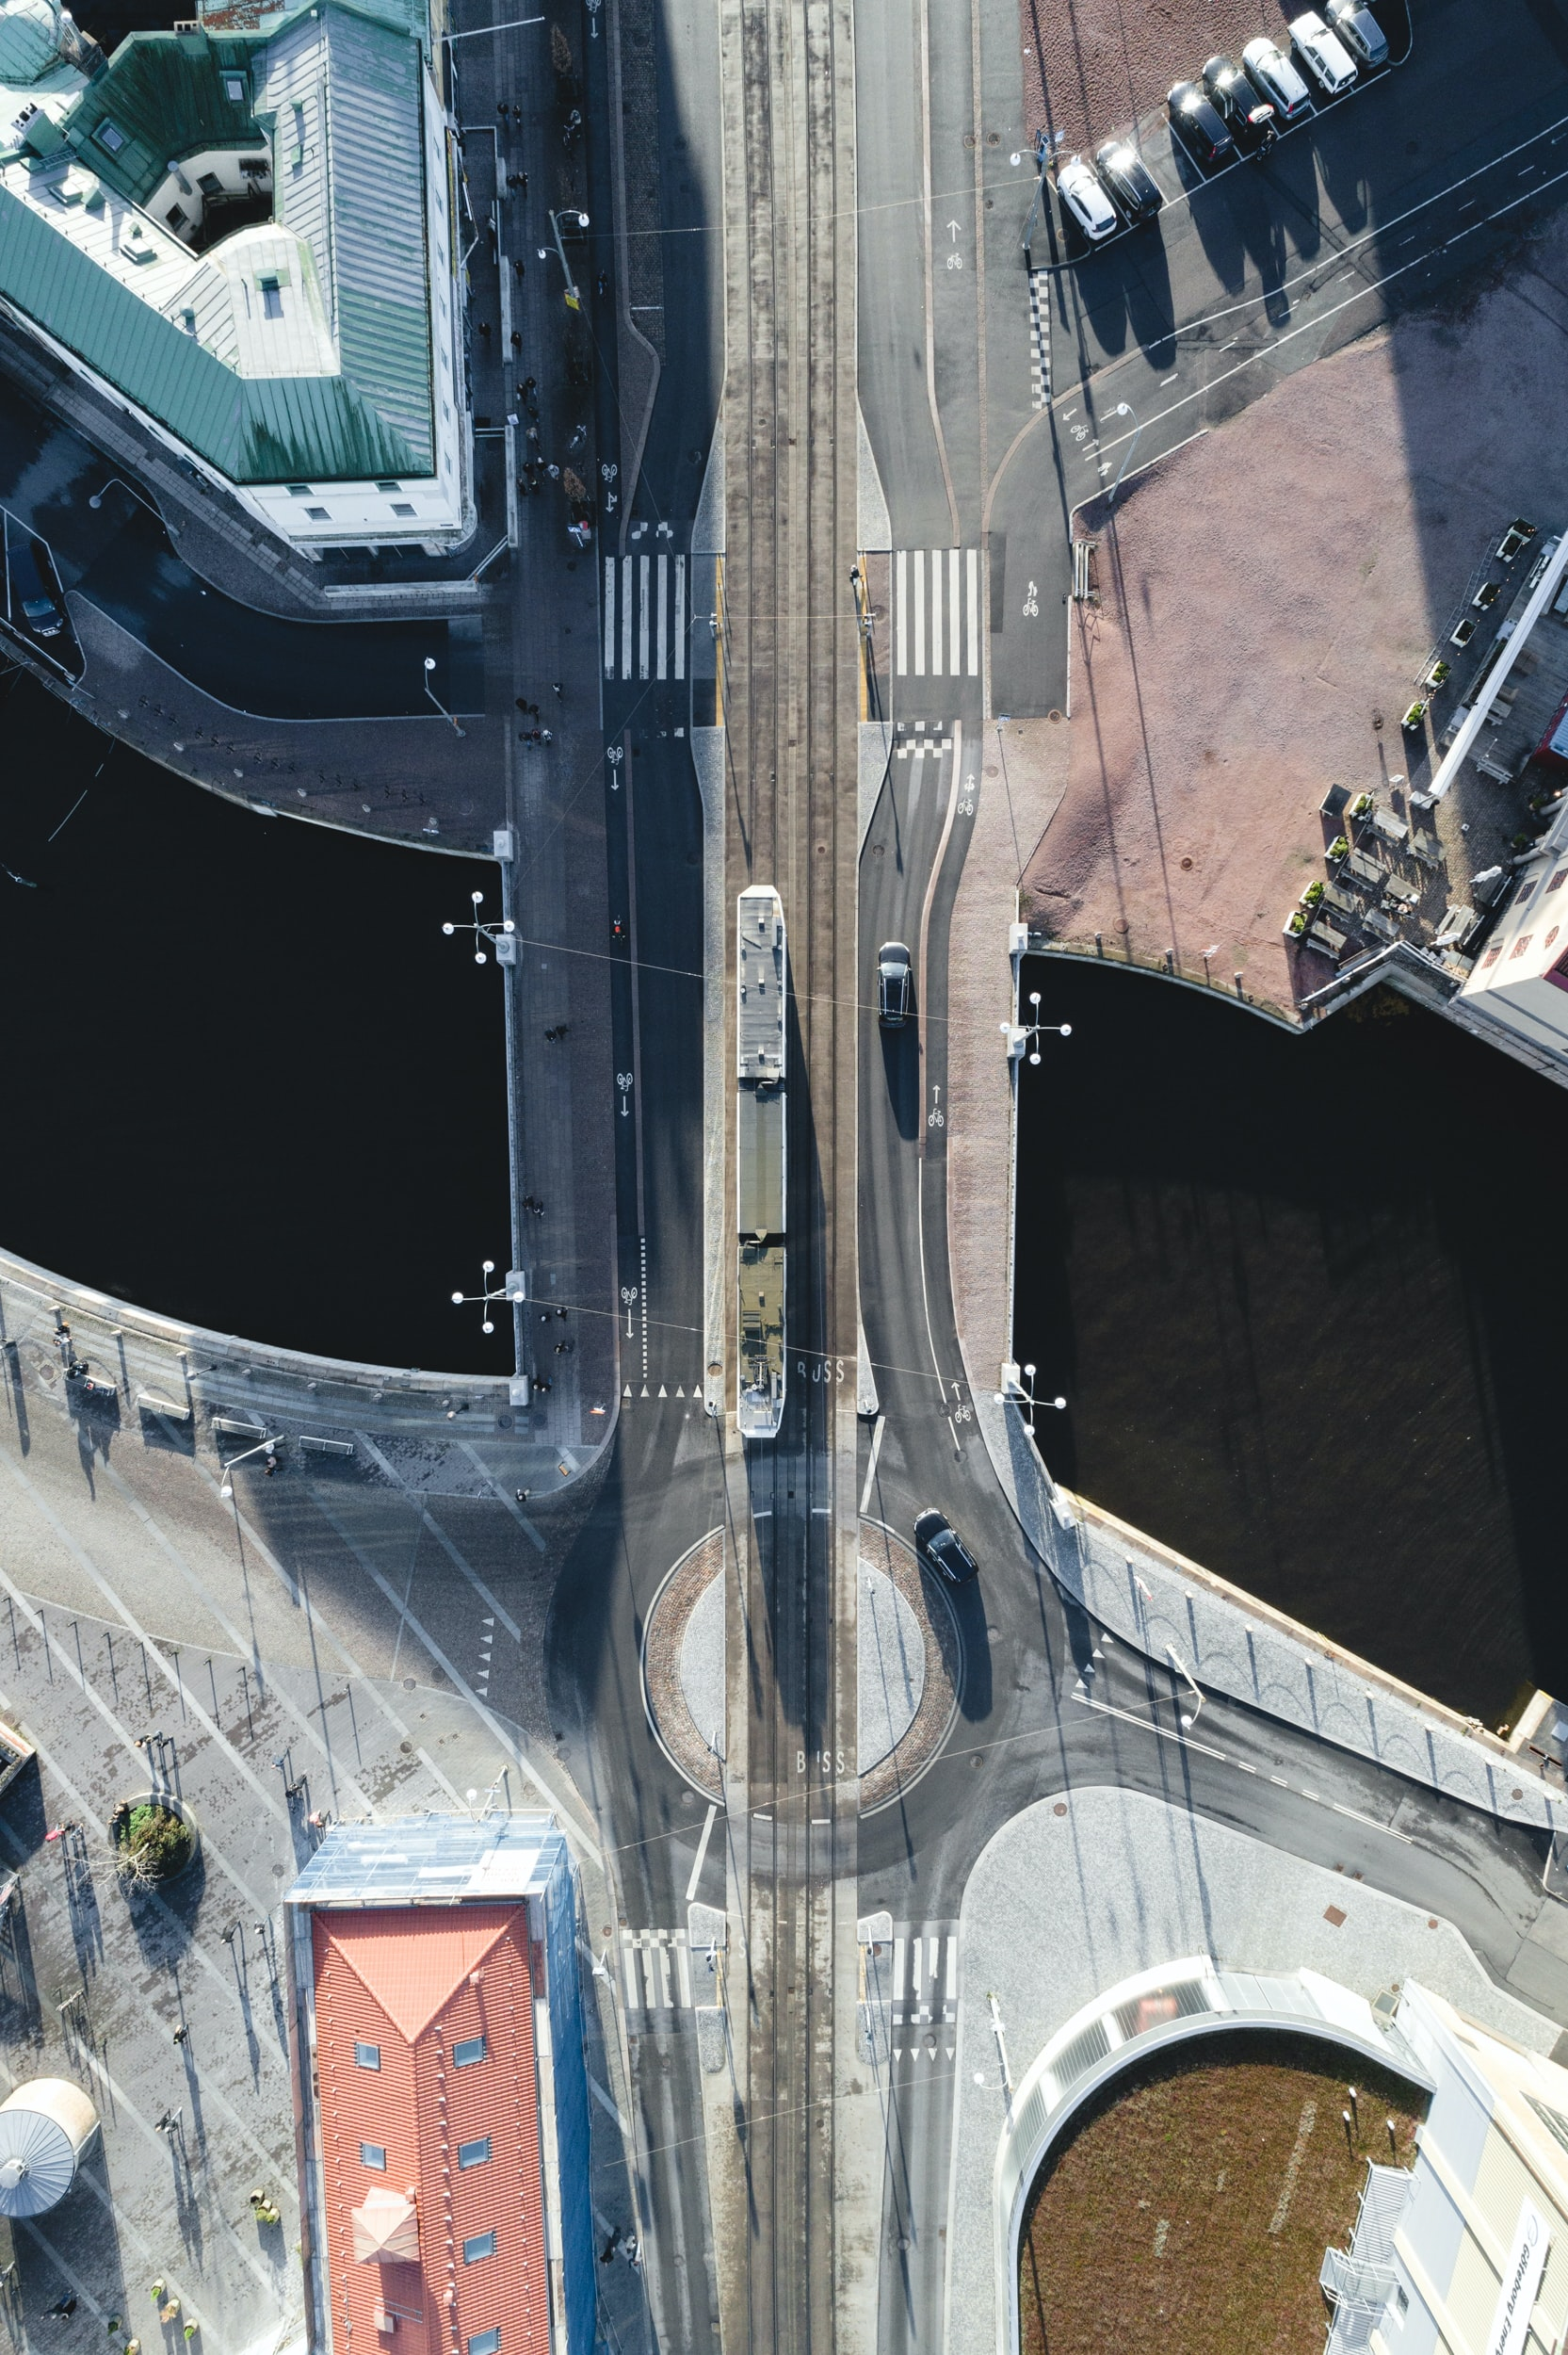 aerial photograph of vehicles on road